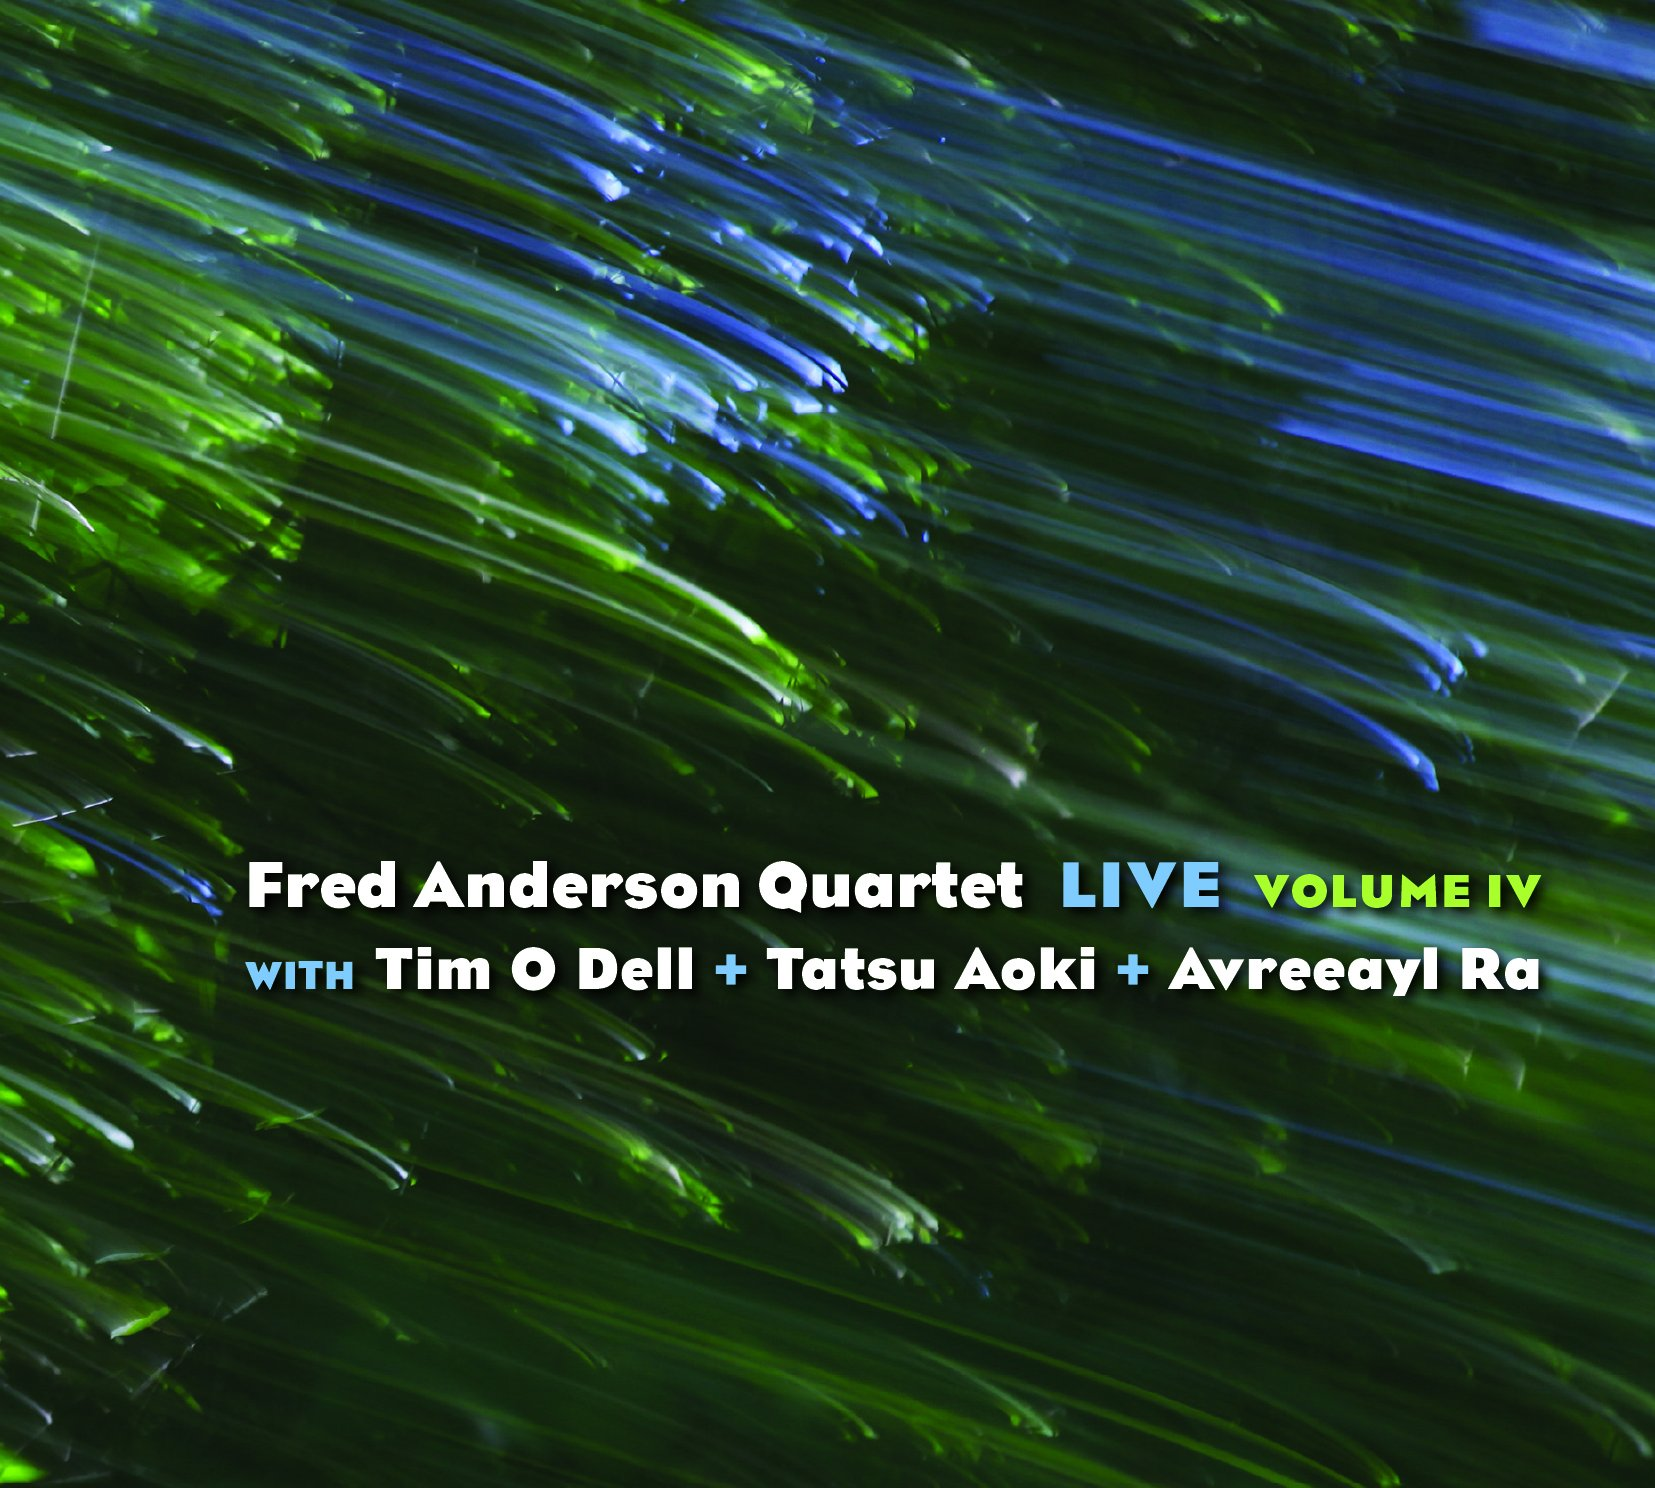 Fred Anderson Quartet Live Volume IV by Asian Improv Records Inc.